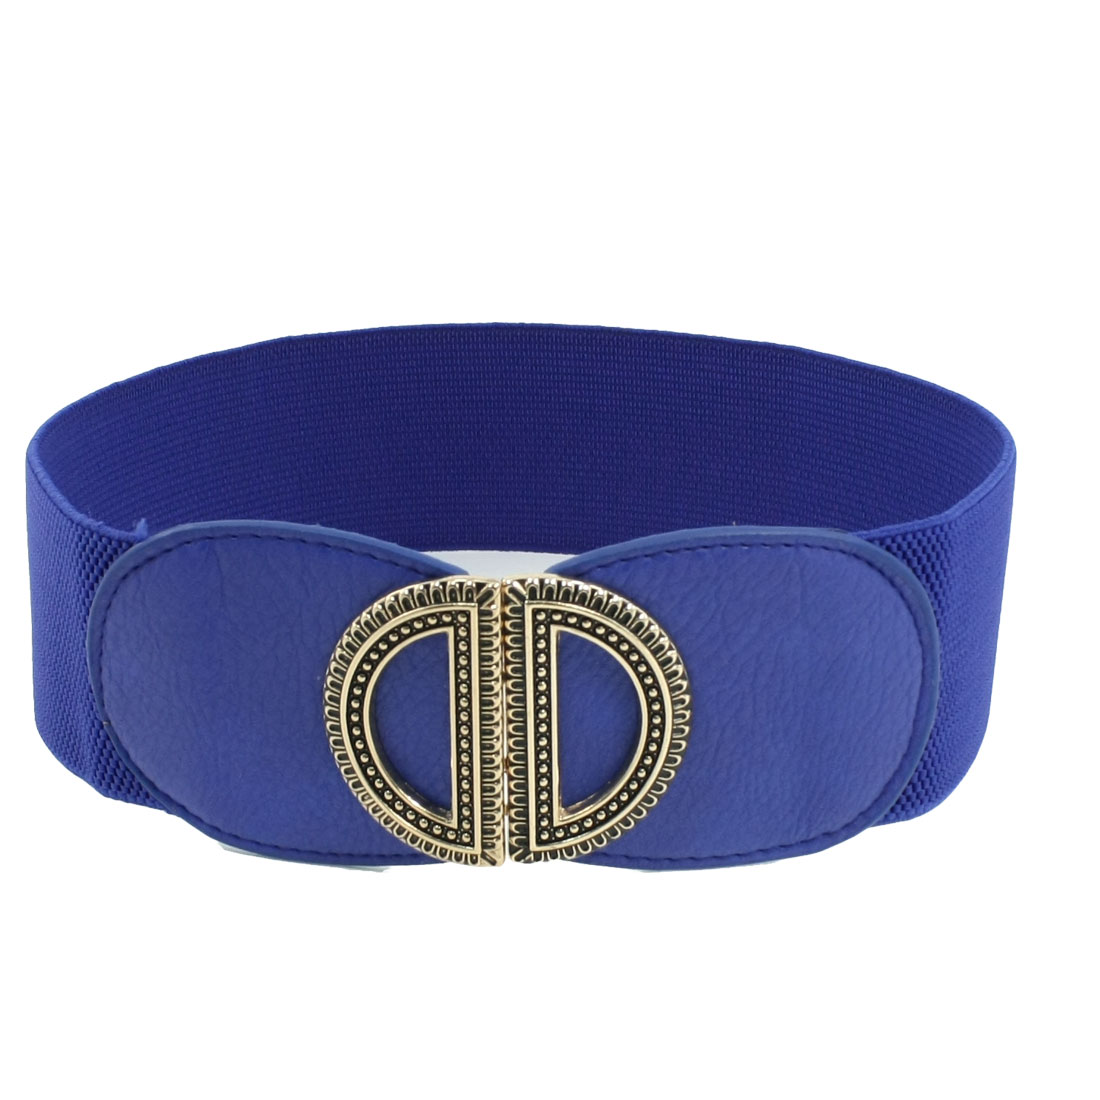 Metal Dual D Interlocking Buckle Blue Elastic Waist Cinch Belt for Ladies